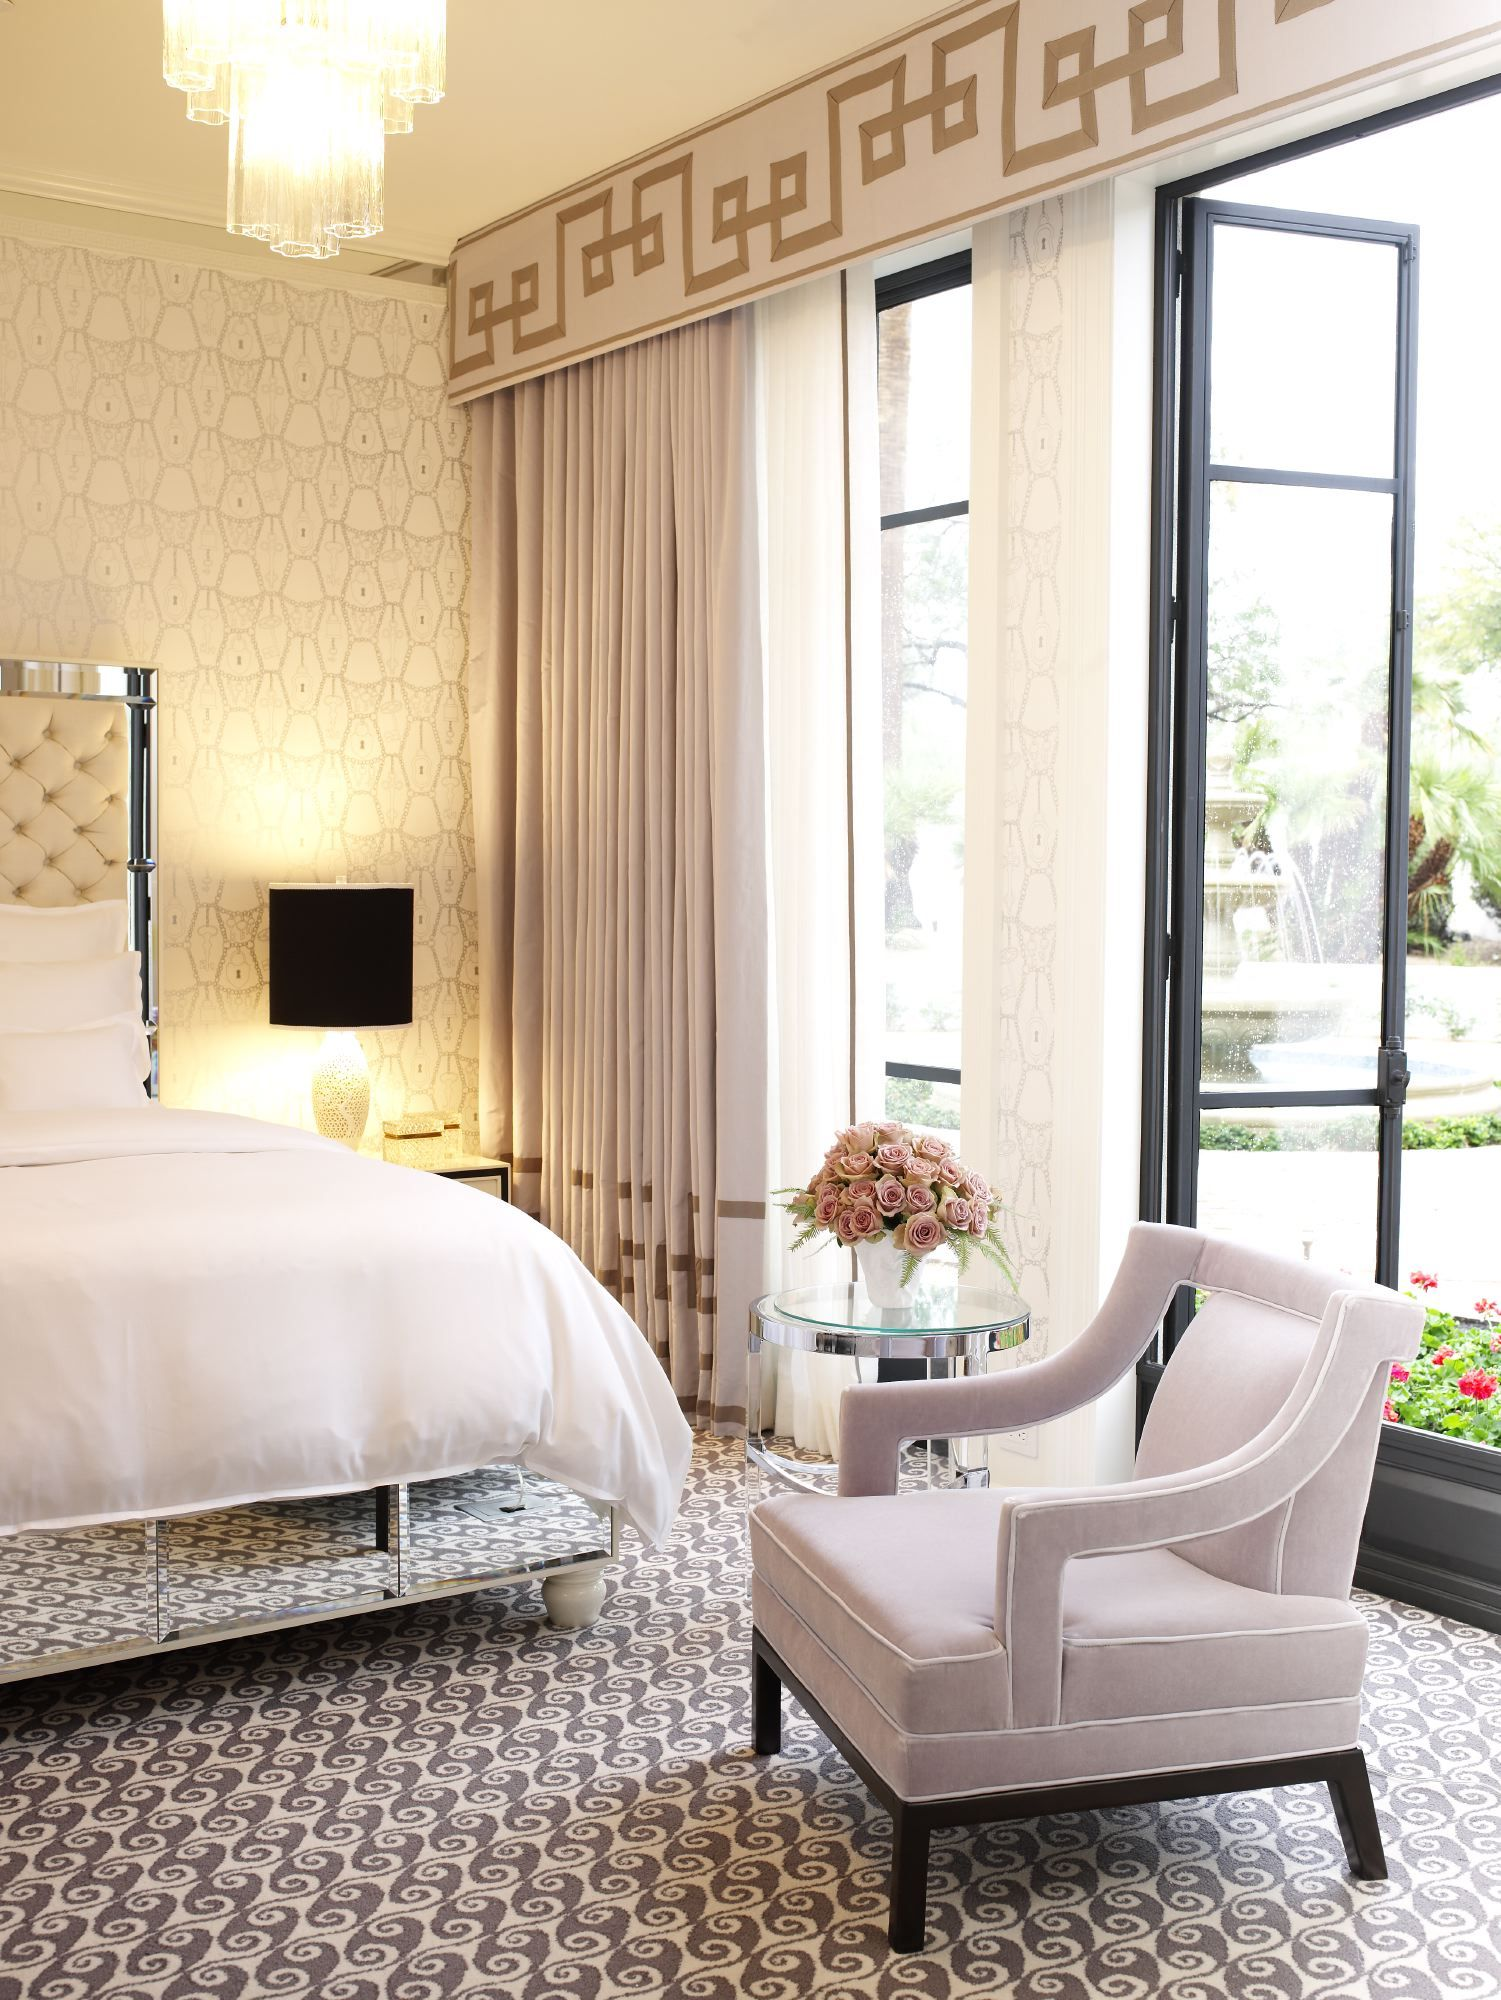 Regency Bedroom Furniture Glamorous Hollywood Regency Bedroom By Jamie Herzlinger My